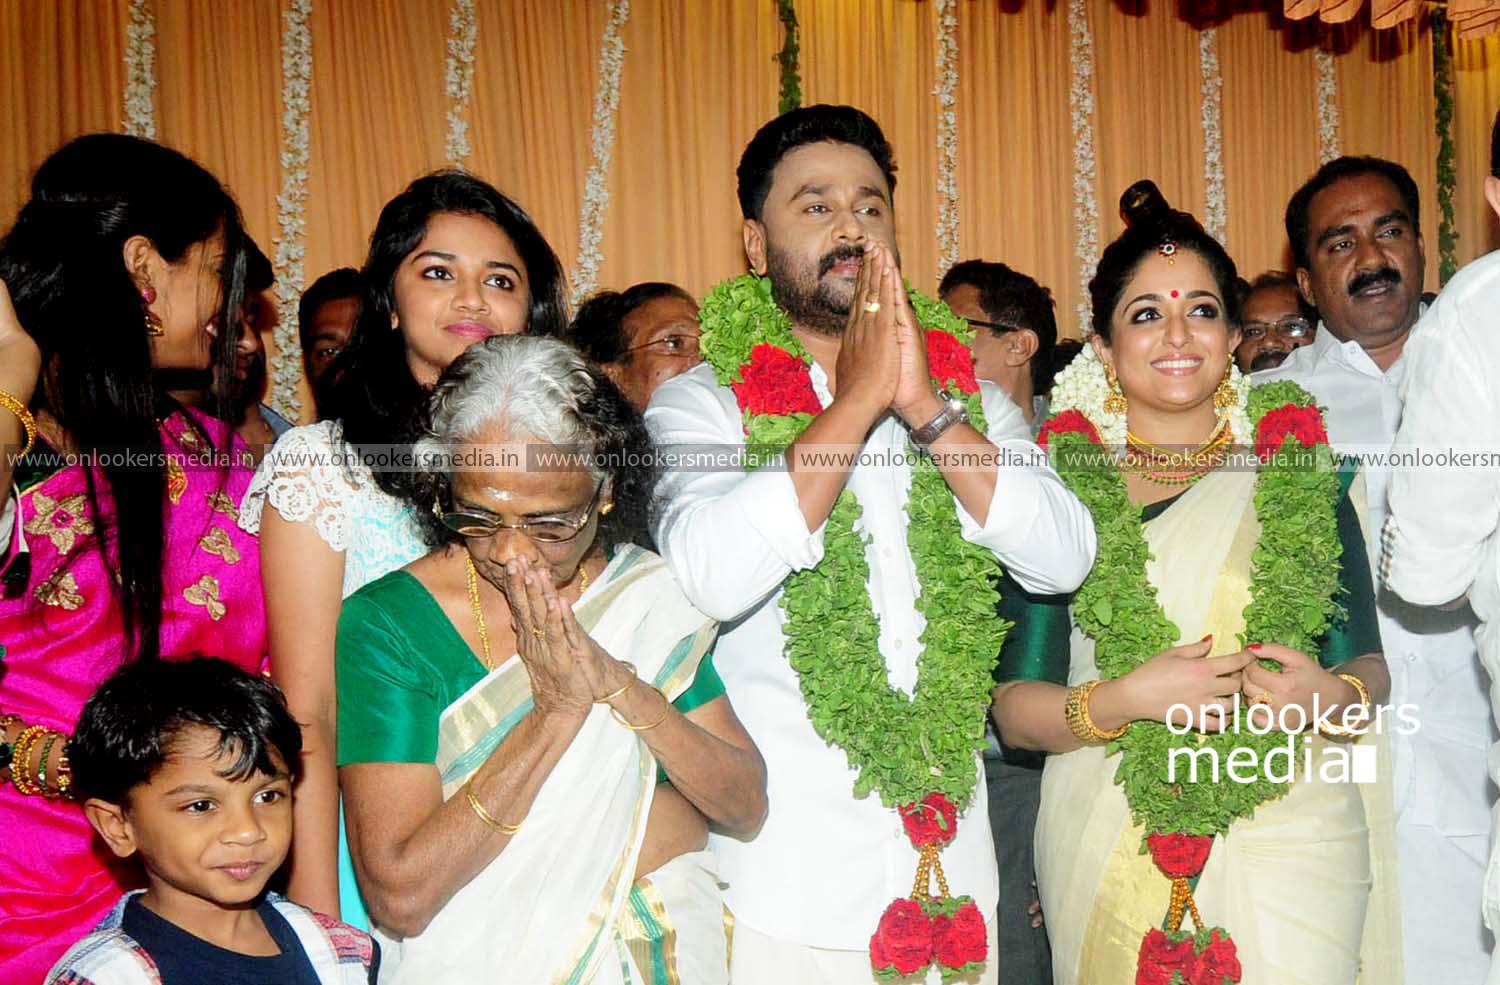 http://onlookersmedia.in/wp-content/uploads/2016/11/Dileep-Kavya-Madhavan-Wedding-Stills-Photos-29.jpg